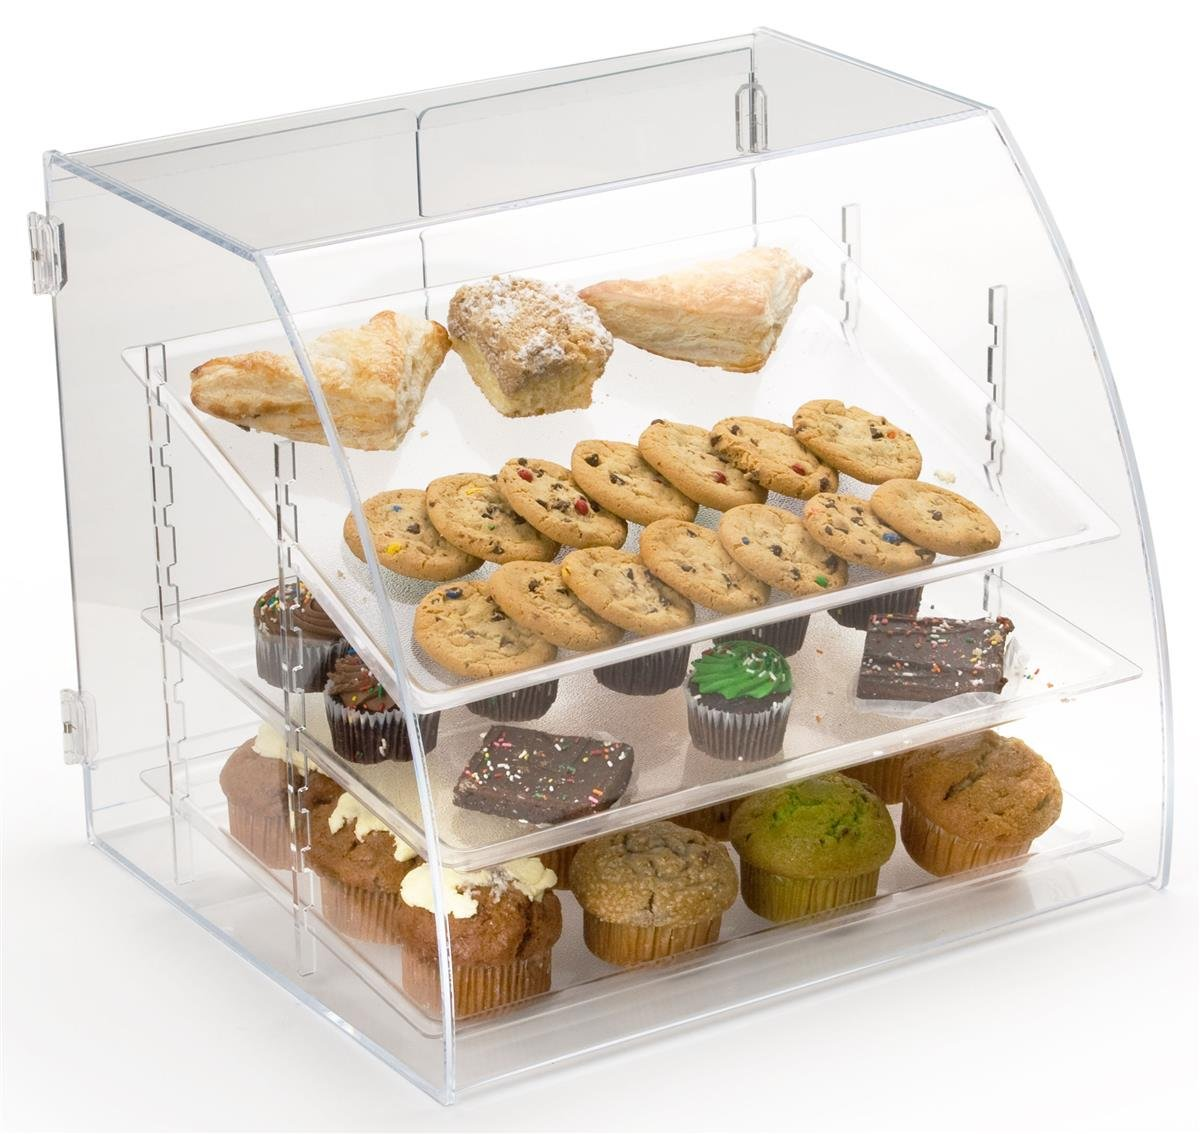 Pastry Display Case with 3 Removable Shelves, Rear Loading - 19''w x 17.5''h x 17.125''d - Clear Acrylic by Displays2go